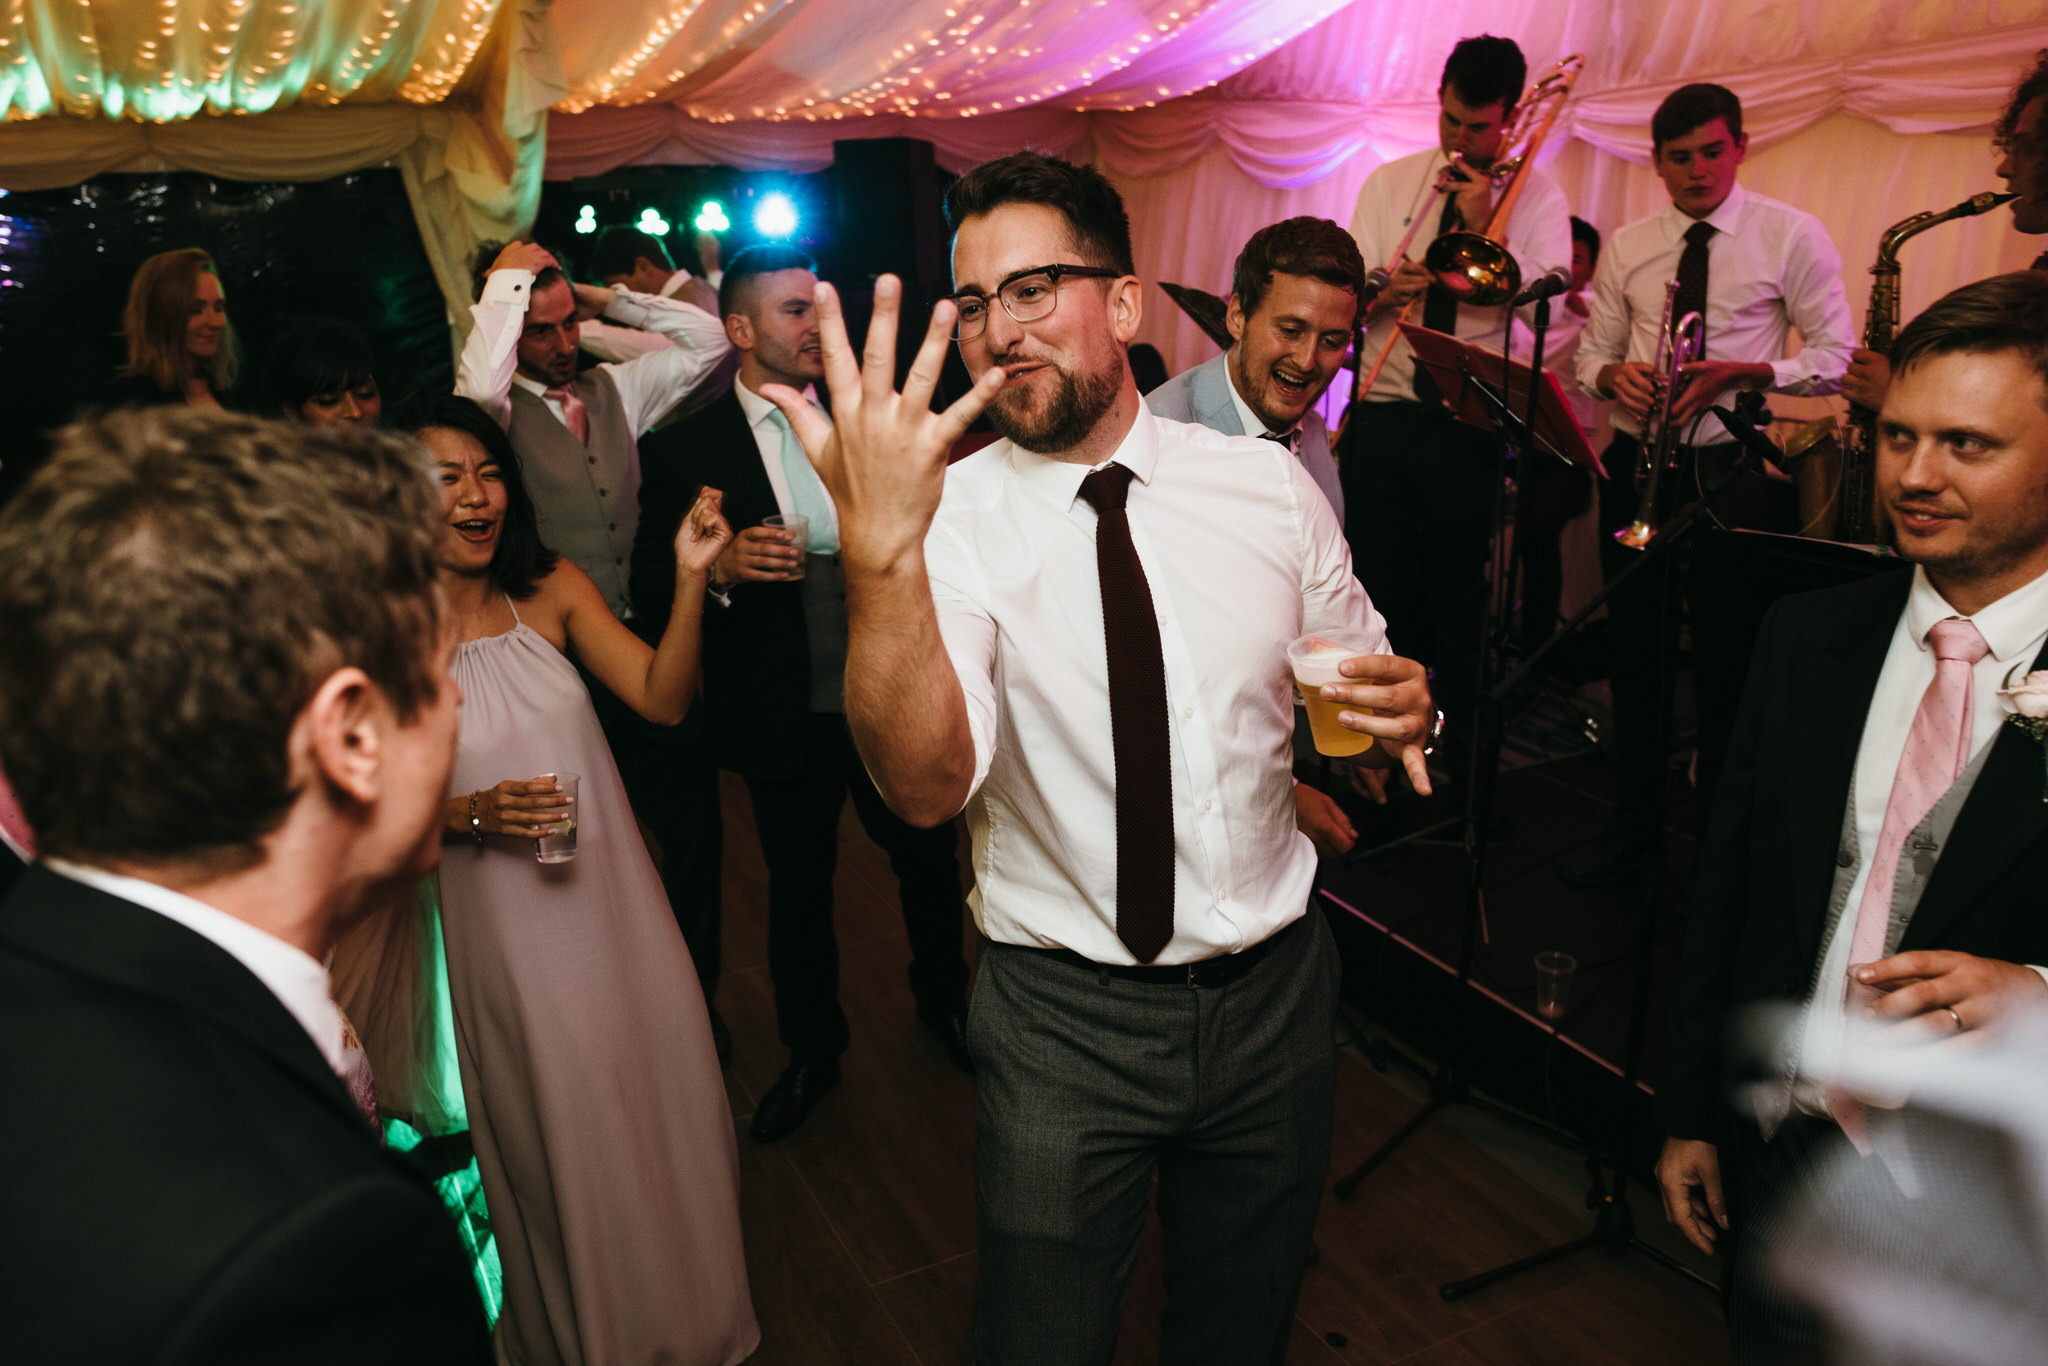 Dunster castle dancing wedding